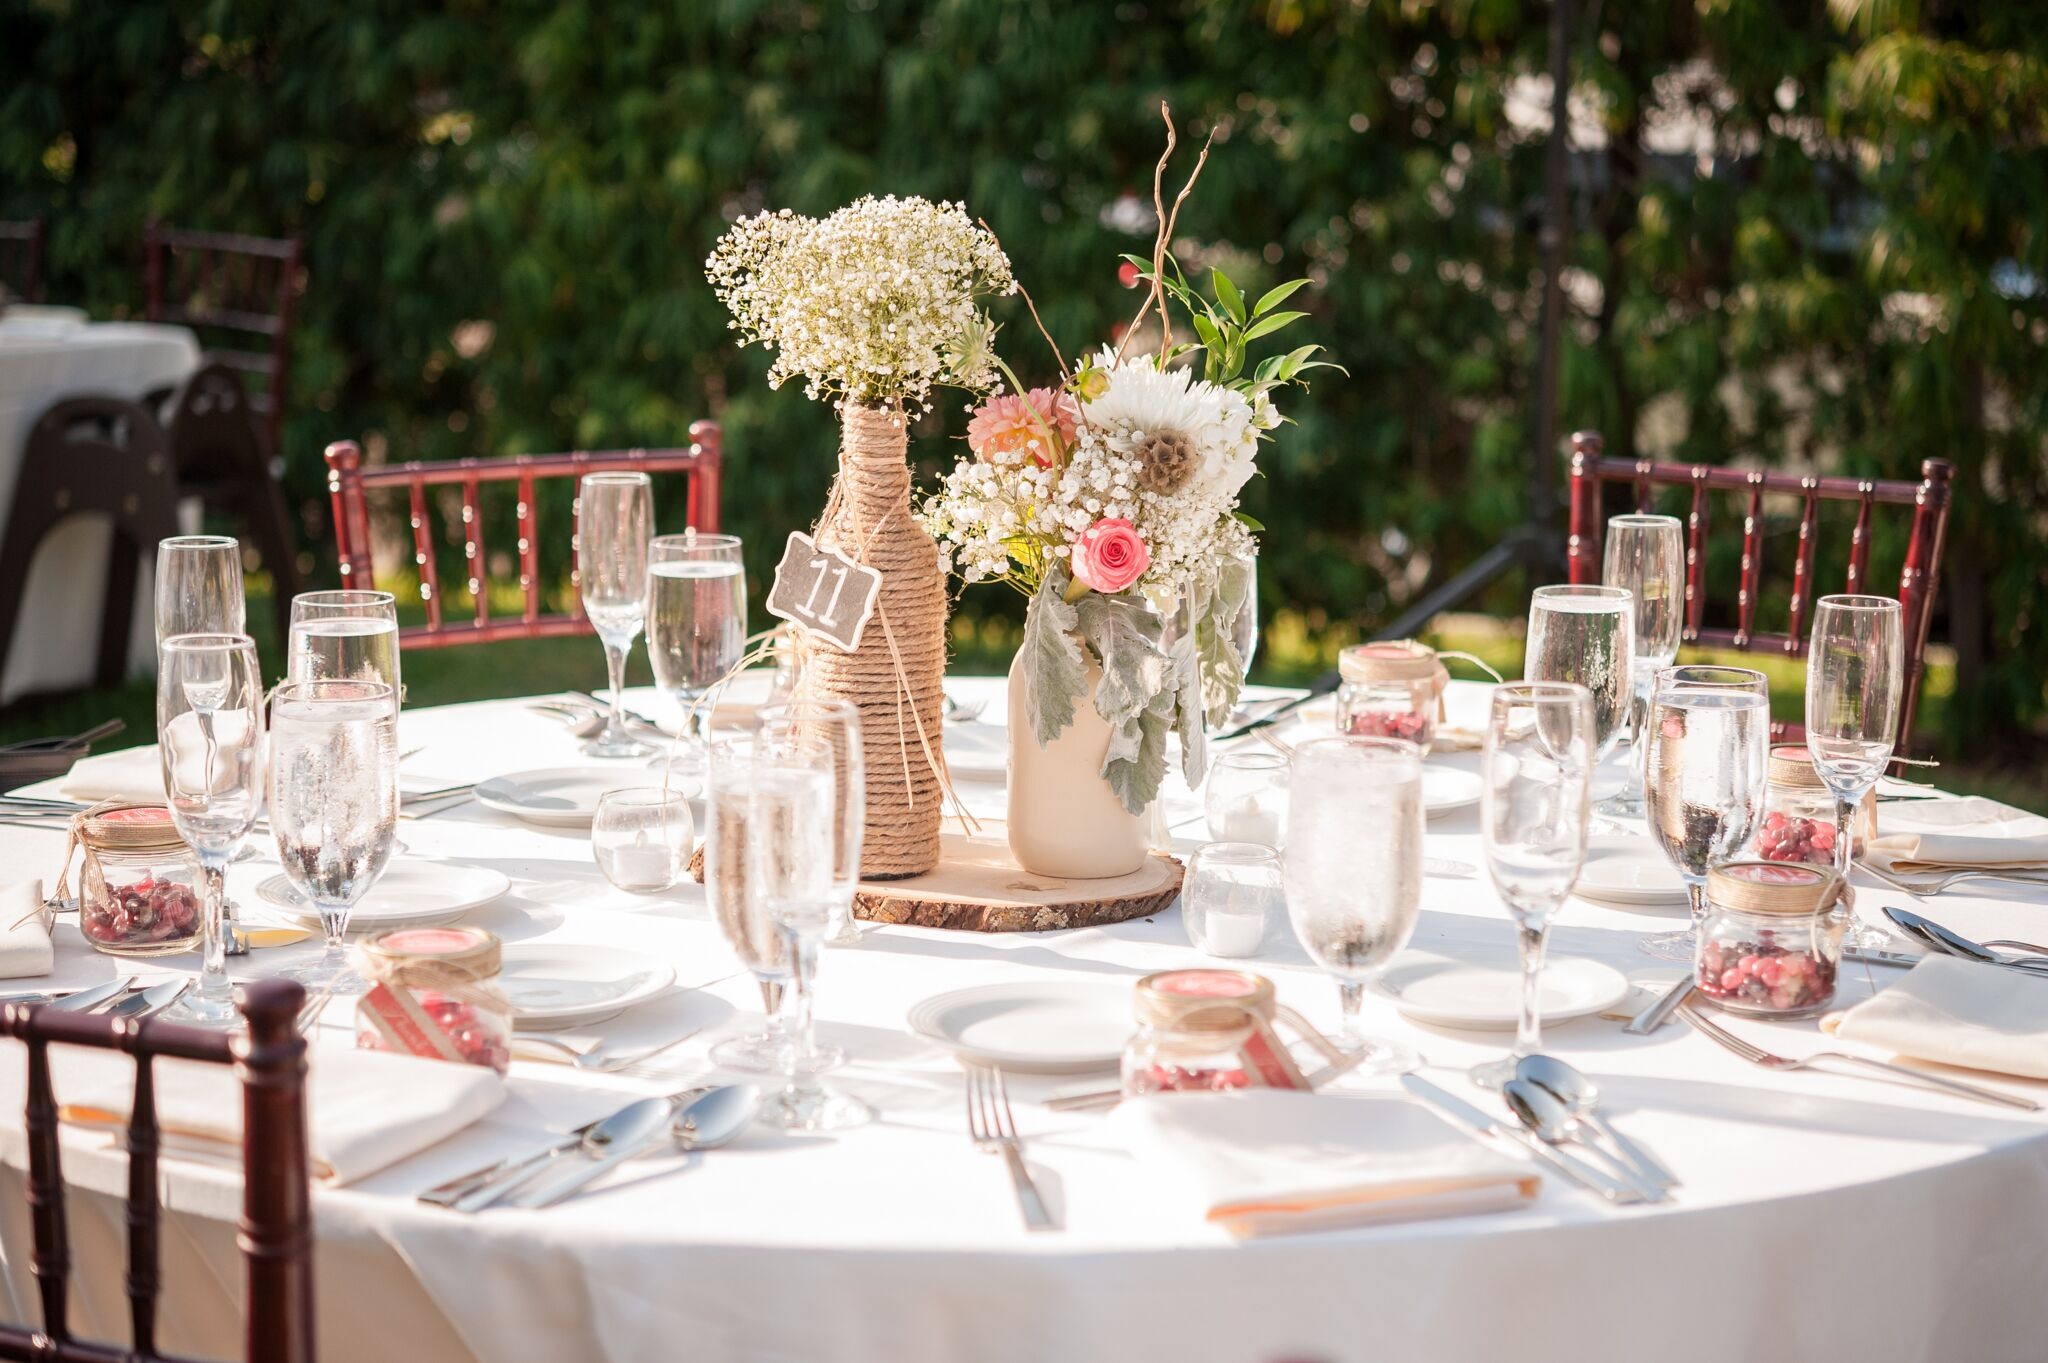 Ivory Dining Table with Rustic Centerpieces